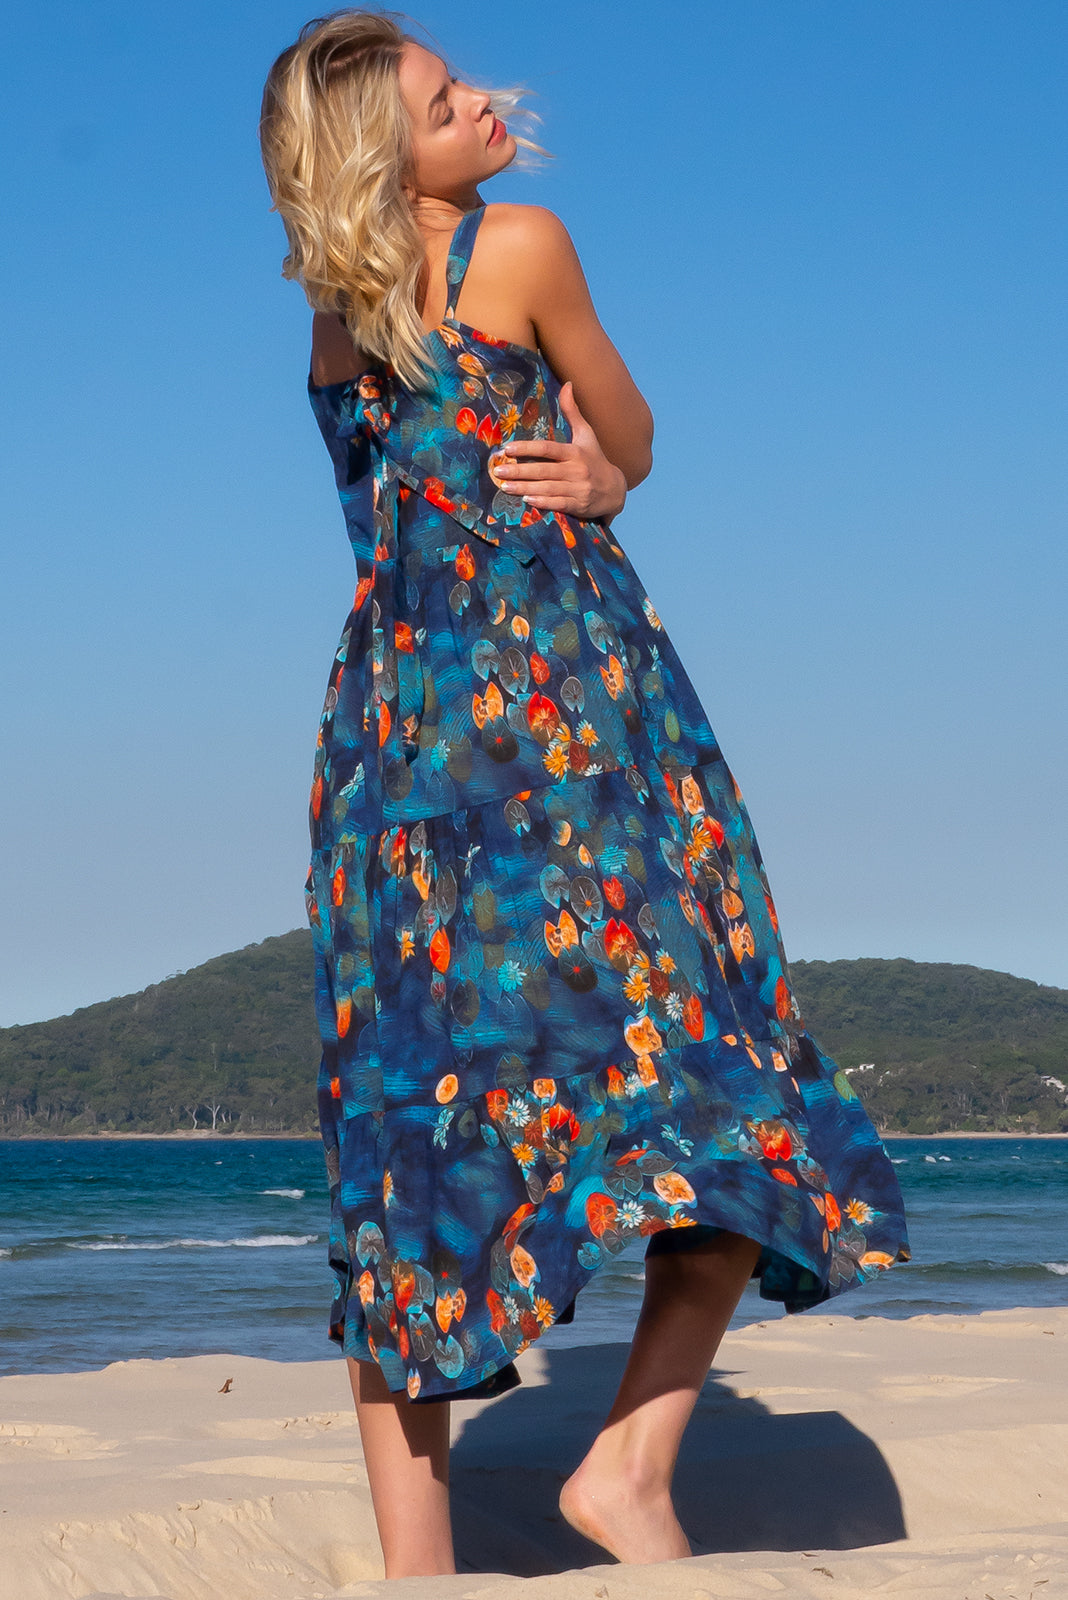 The Lulu Loves Lilly Pond Maxi Dress is a oversized maxi dress featuring a tiered skirt, sleeveless design with adjustable neck tie, hidden side pockets and 100% cotton in navy base with lilly pond print.